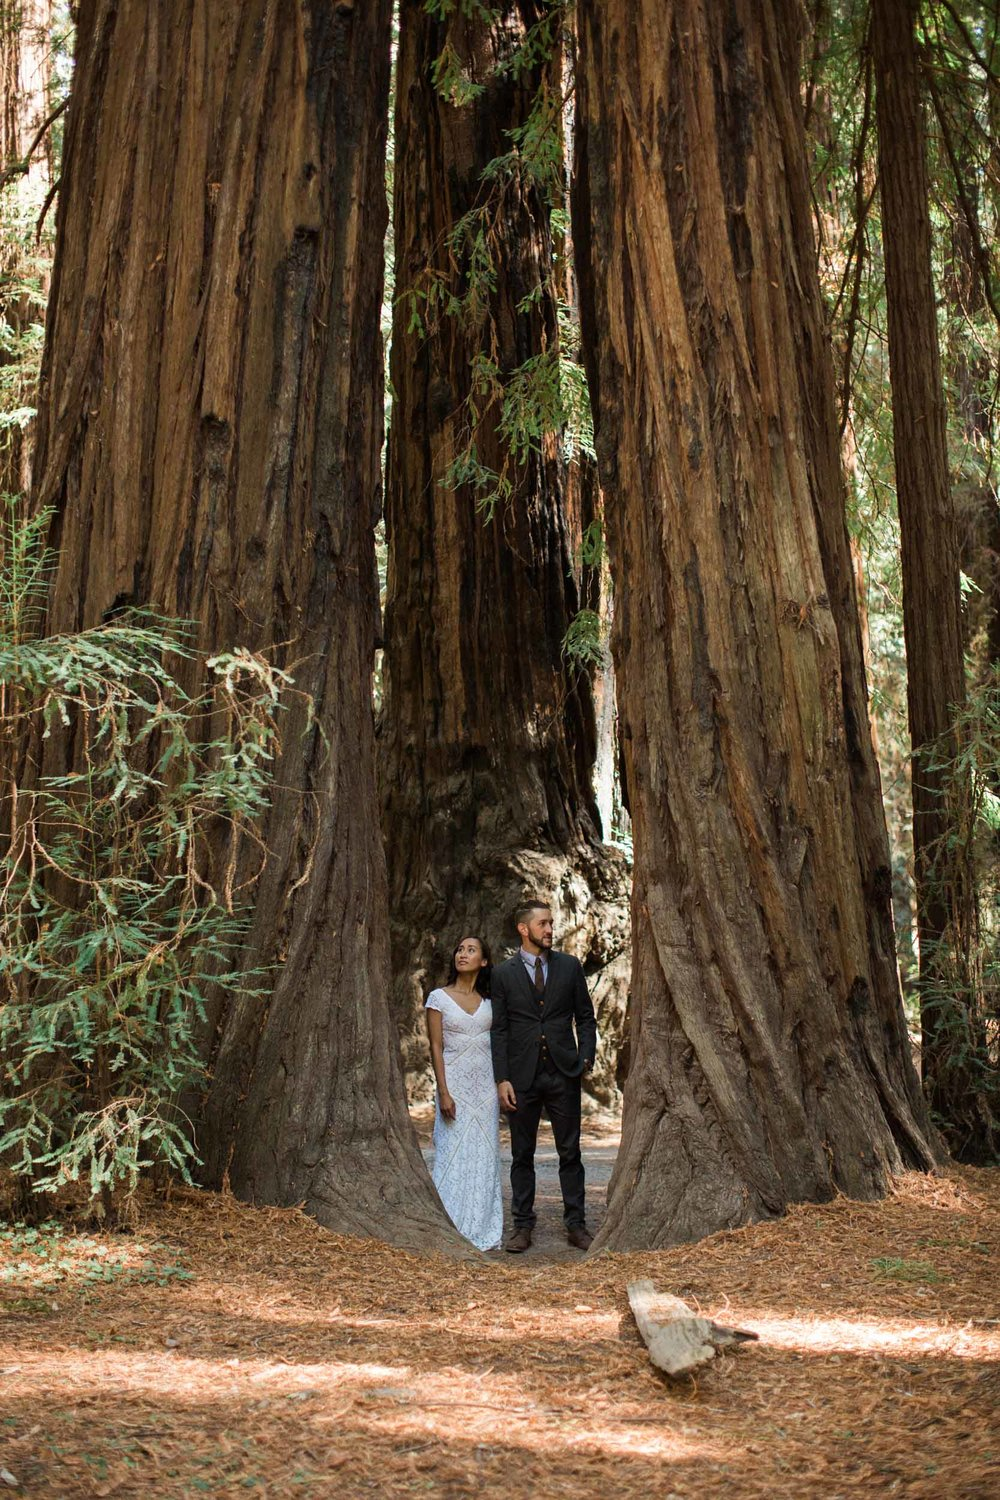 BKM-Photography-Russian-River-Wedding-Redwoods-Guerneville-California-Destination-Wedding-Photographer-0026.jpg